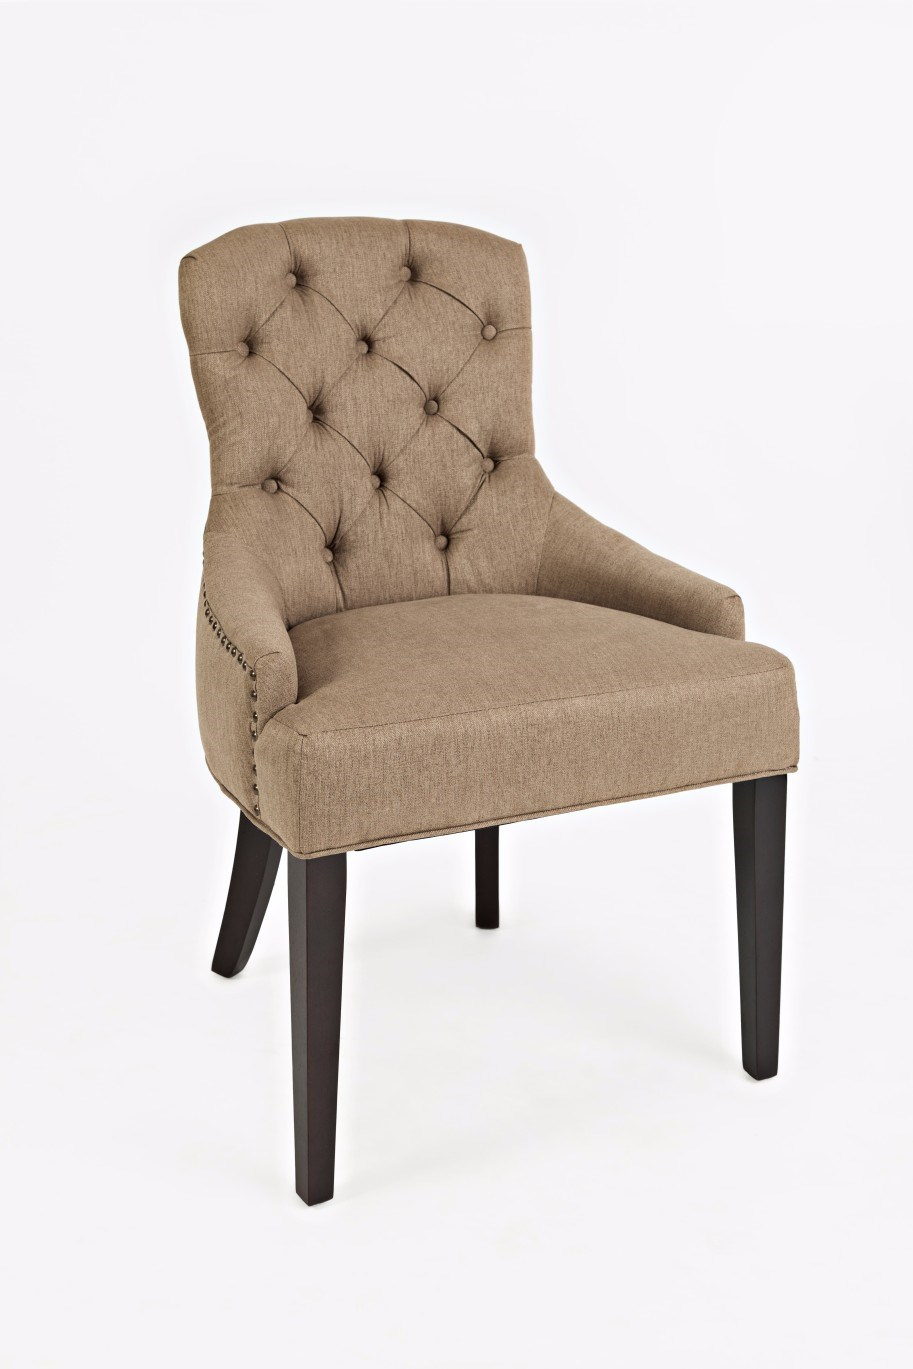 Geneva Hills Upholstered Side Chair With Tufted Back By Jofran At Dunk Bright Furniture